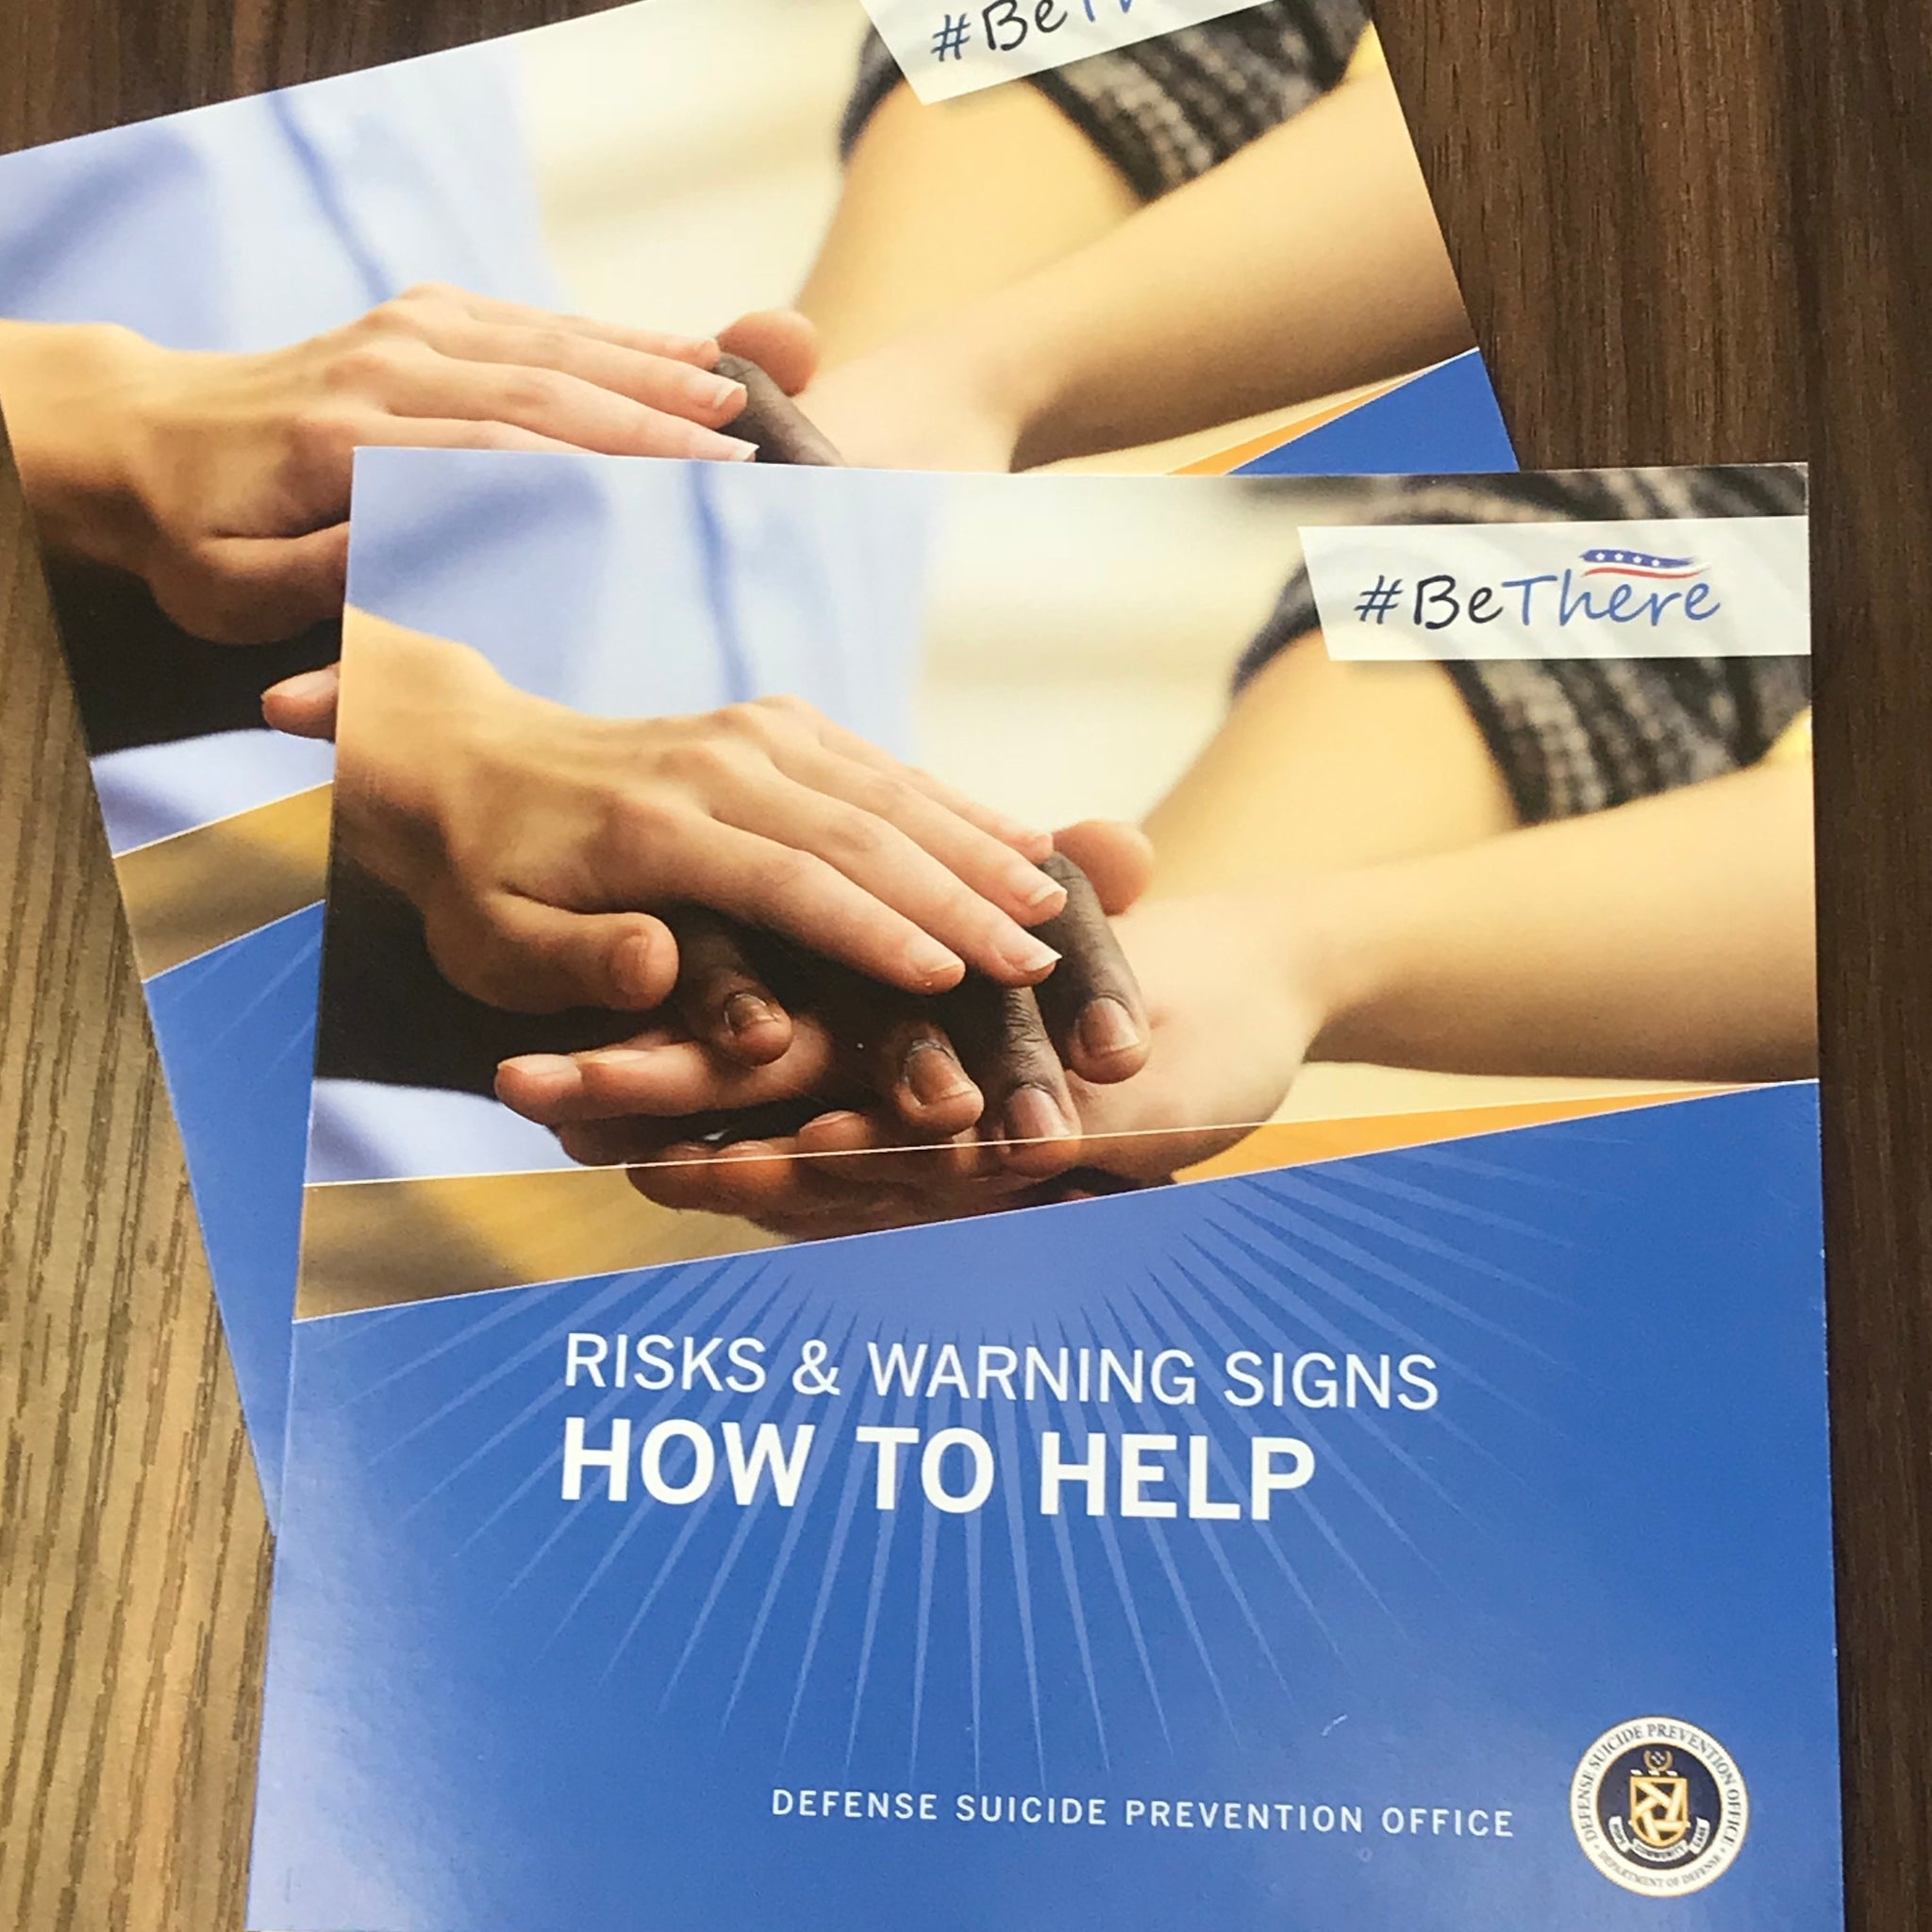 How to Help Brochure